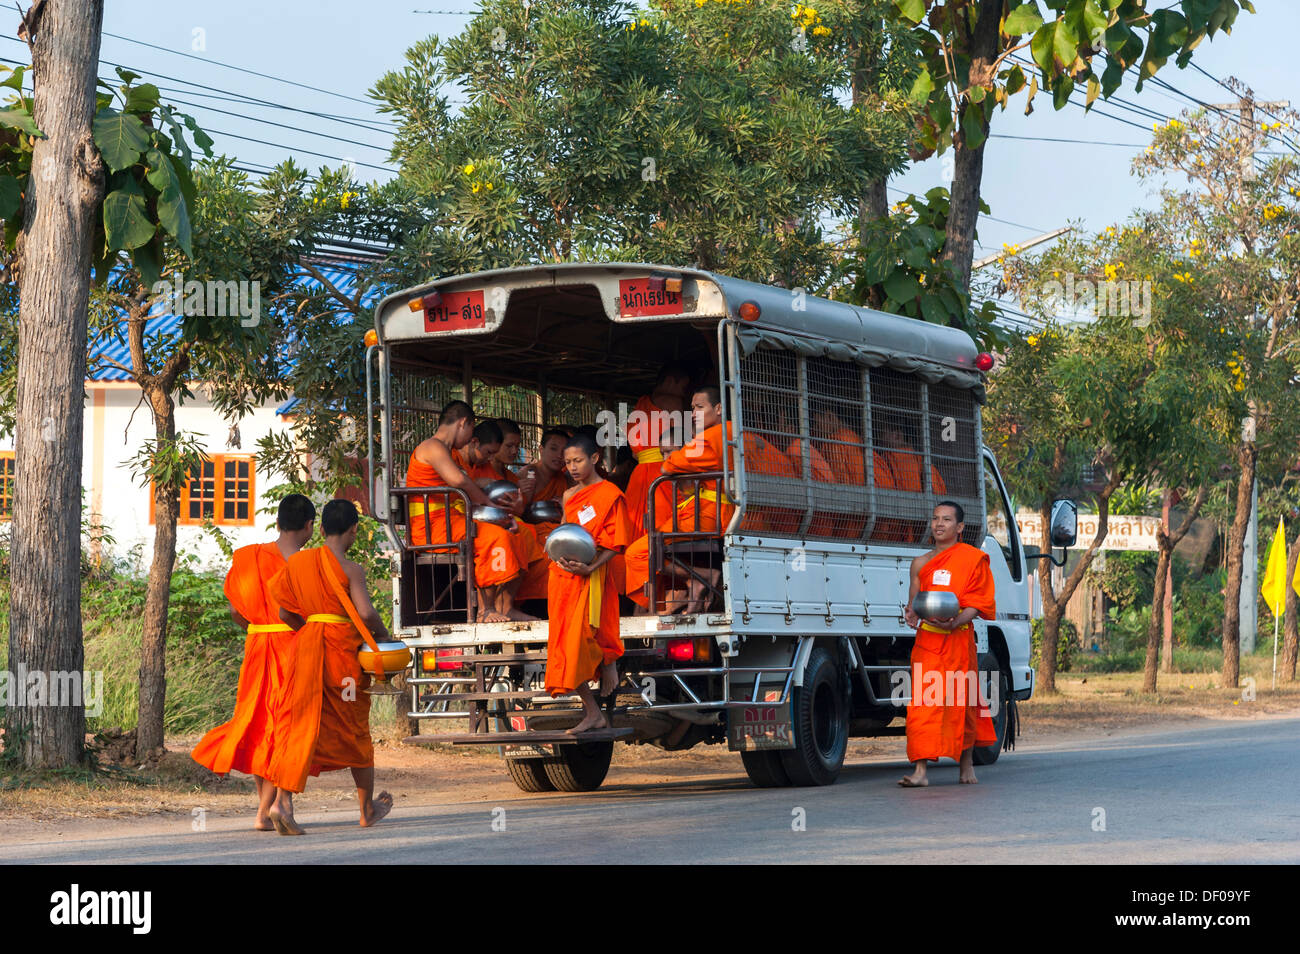 Songthaeo or songthaew, converted vehicle with young Buddhist monks from monastery school, Sukhothai province, Thailand, Asia - Stock Image